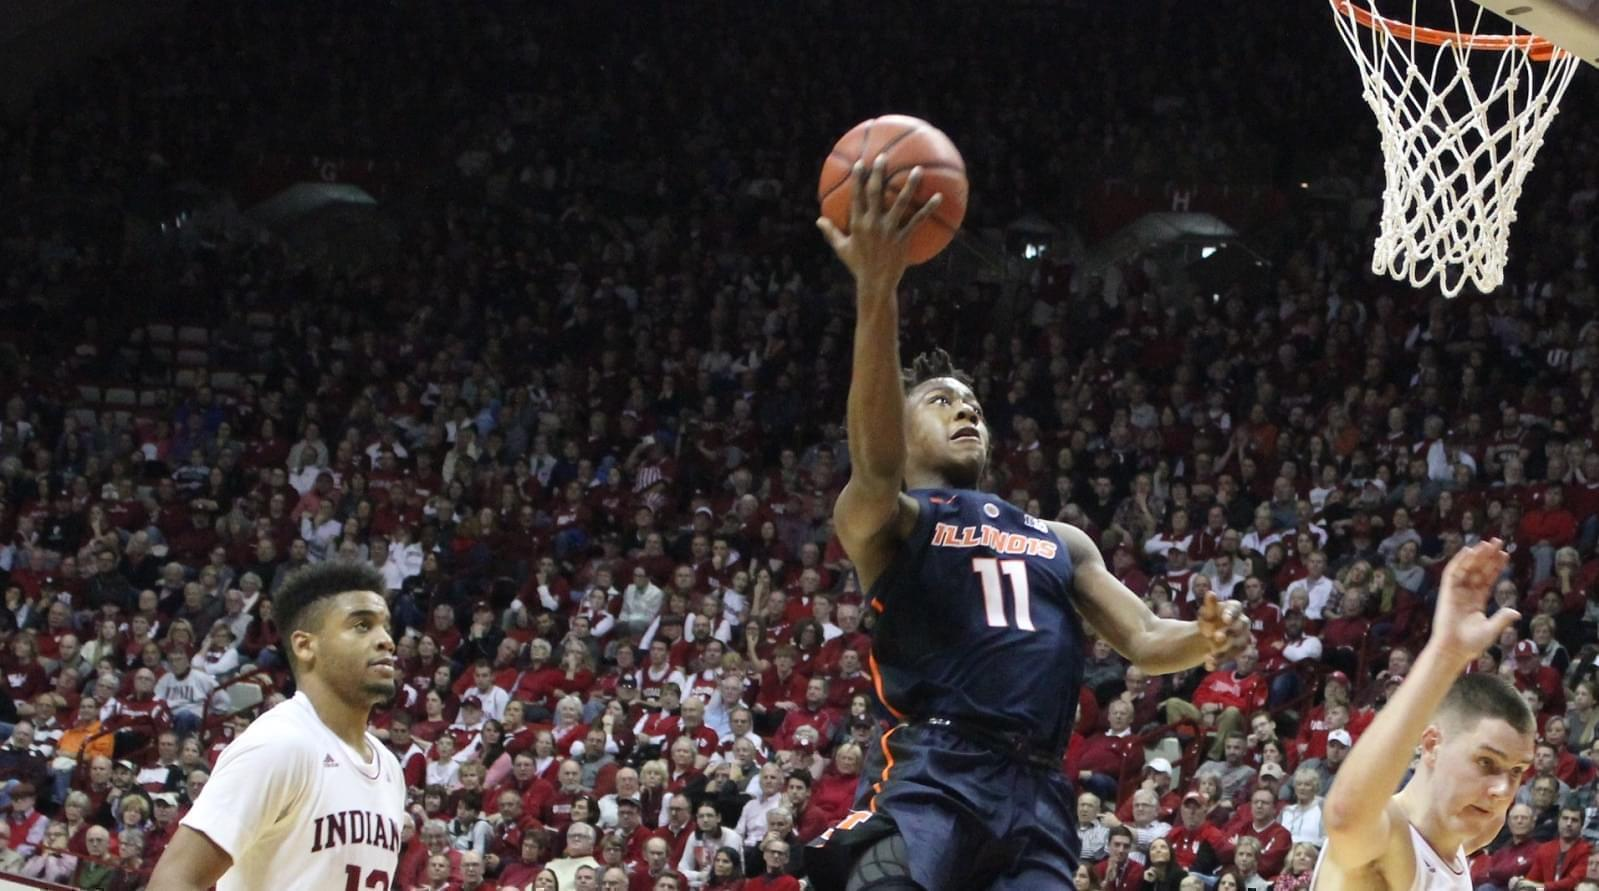 Illinois guard Ayo Dosunmu drives for a lay-up at Indiana, Thursday night in Bloomington.